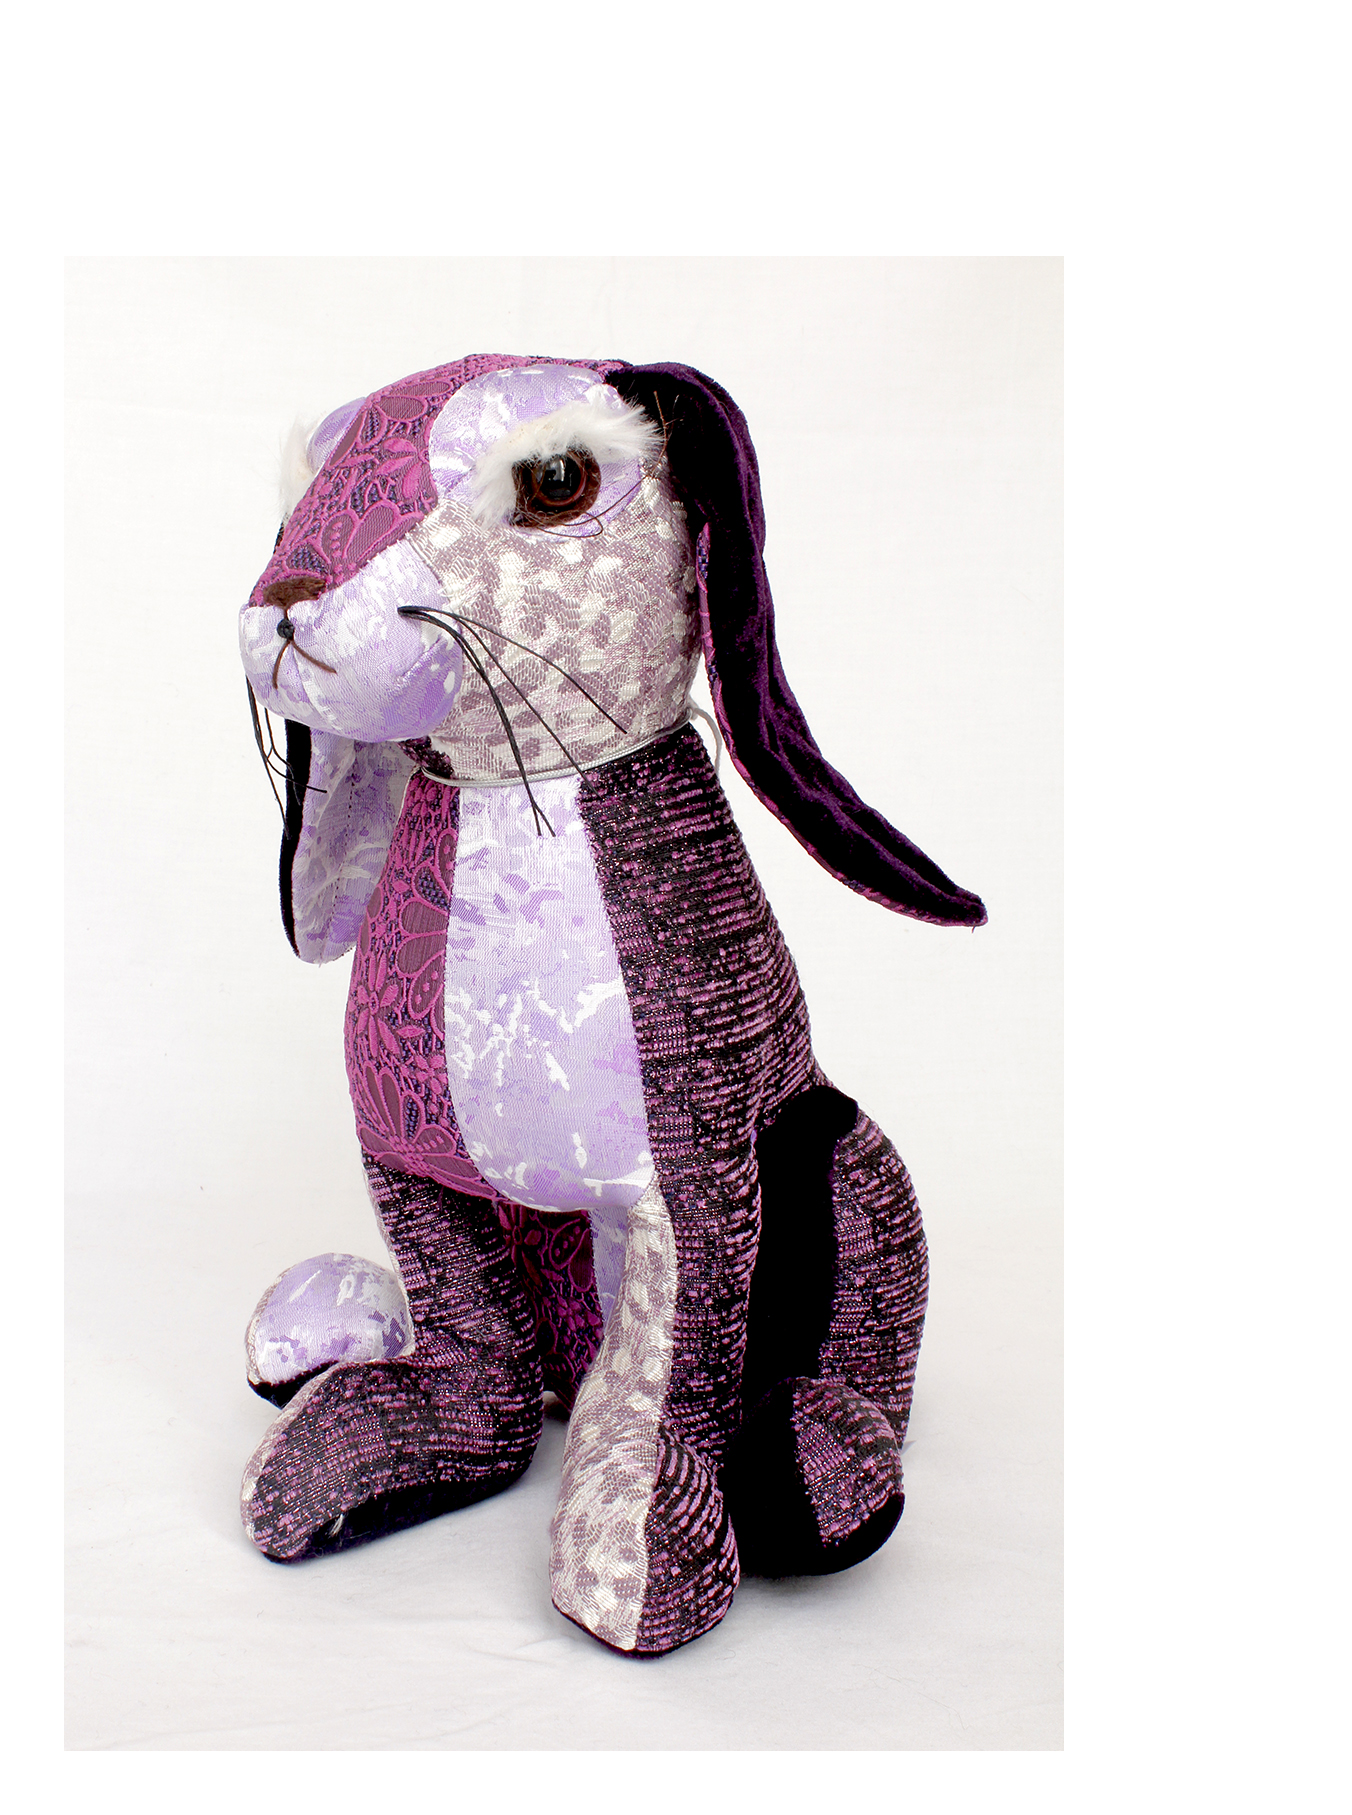 Patchwork hare by dora designs